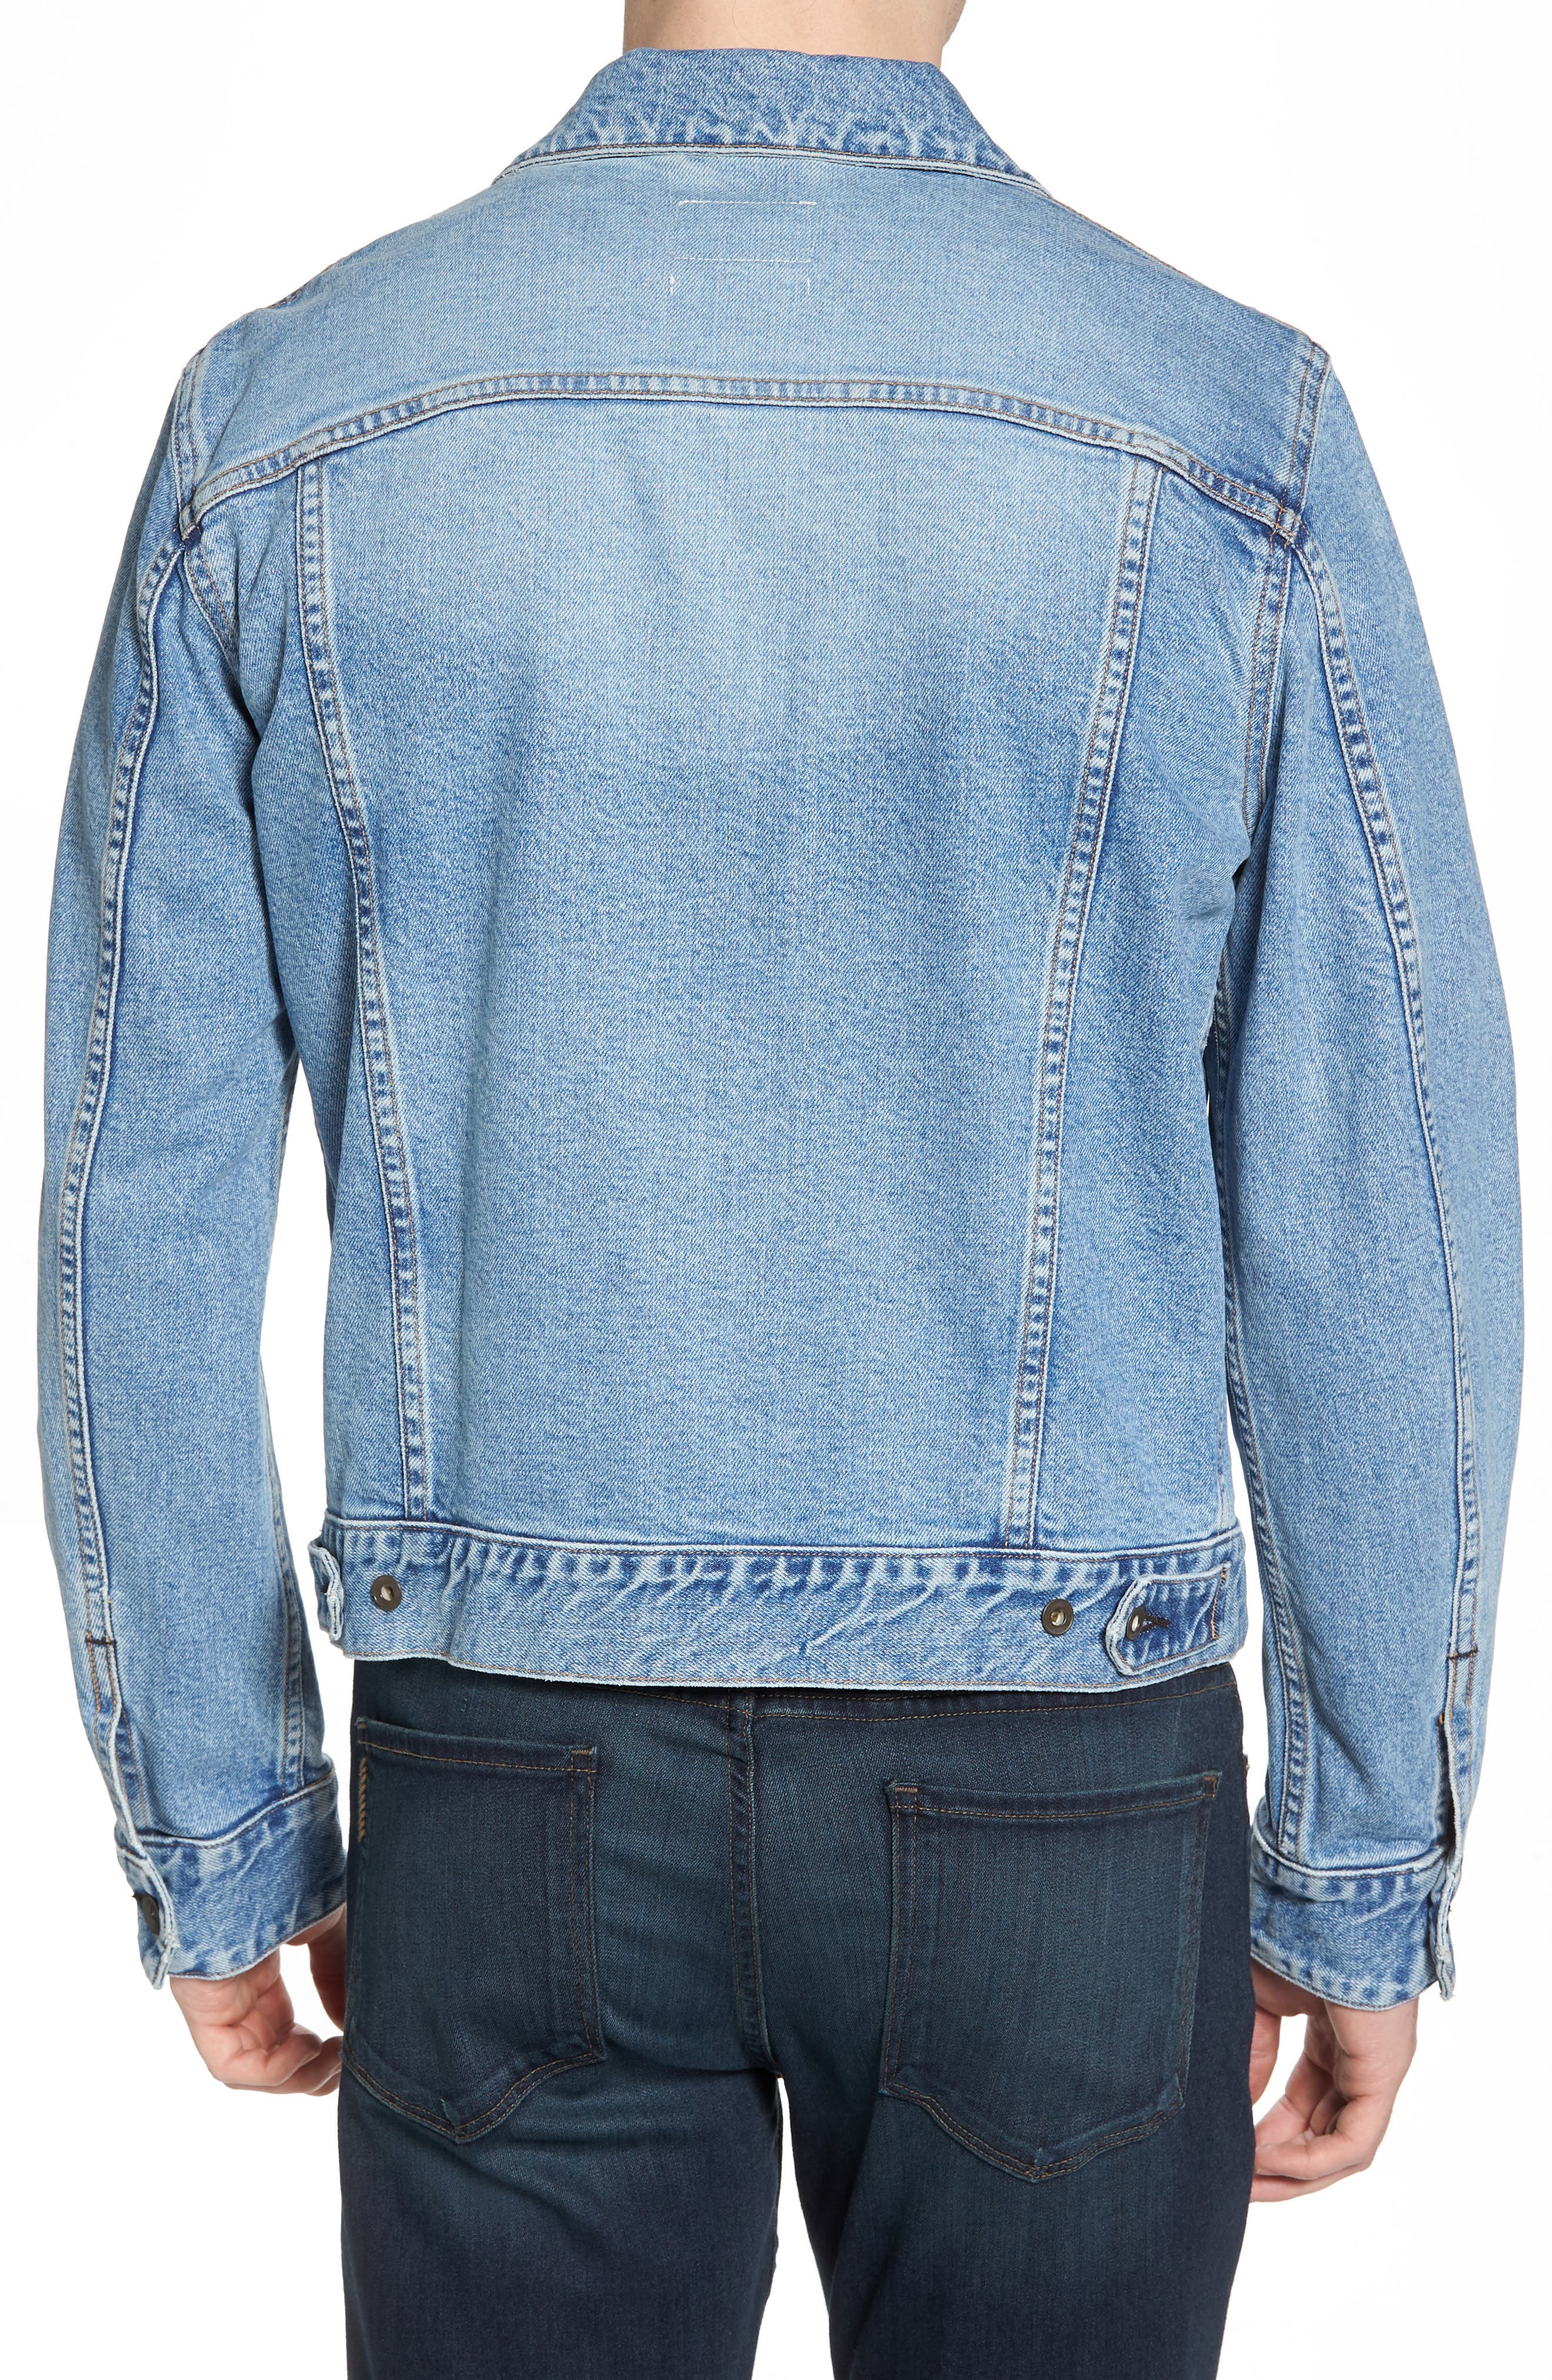 Jean Jacket,                             Alternate thumbnail 2, color,                             450